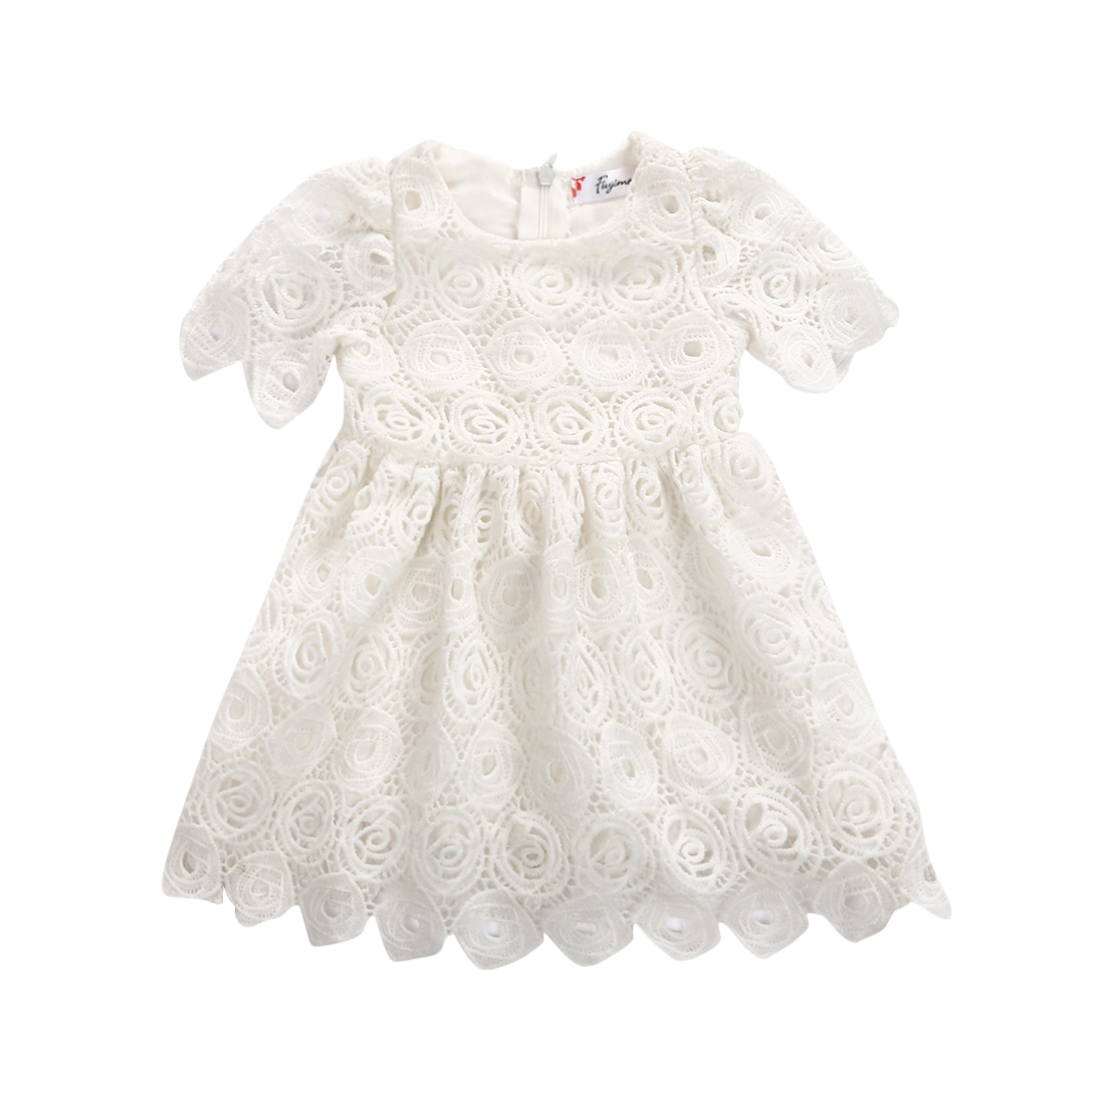 Infant Toddler Baby Girls White Lace Tutu Dress Floral Party Wedding Princess Dresses Easter Costumes for girls